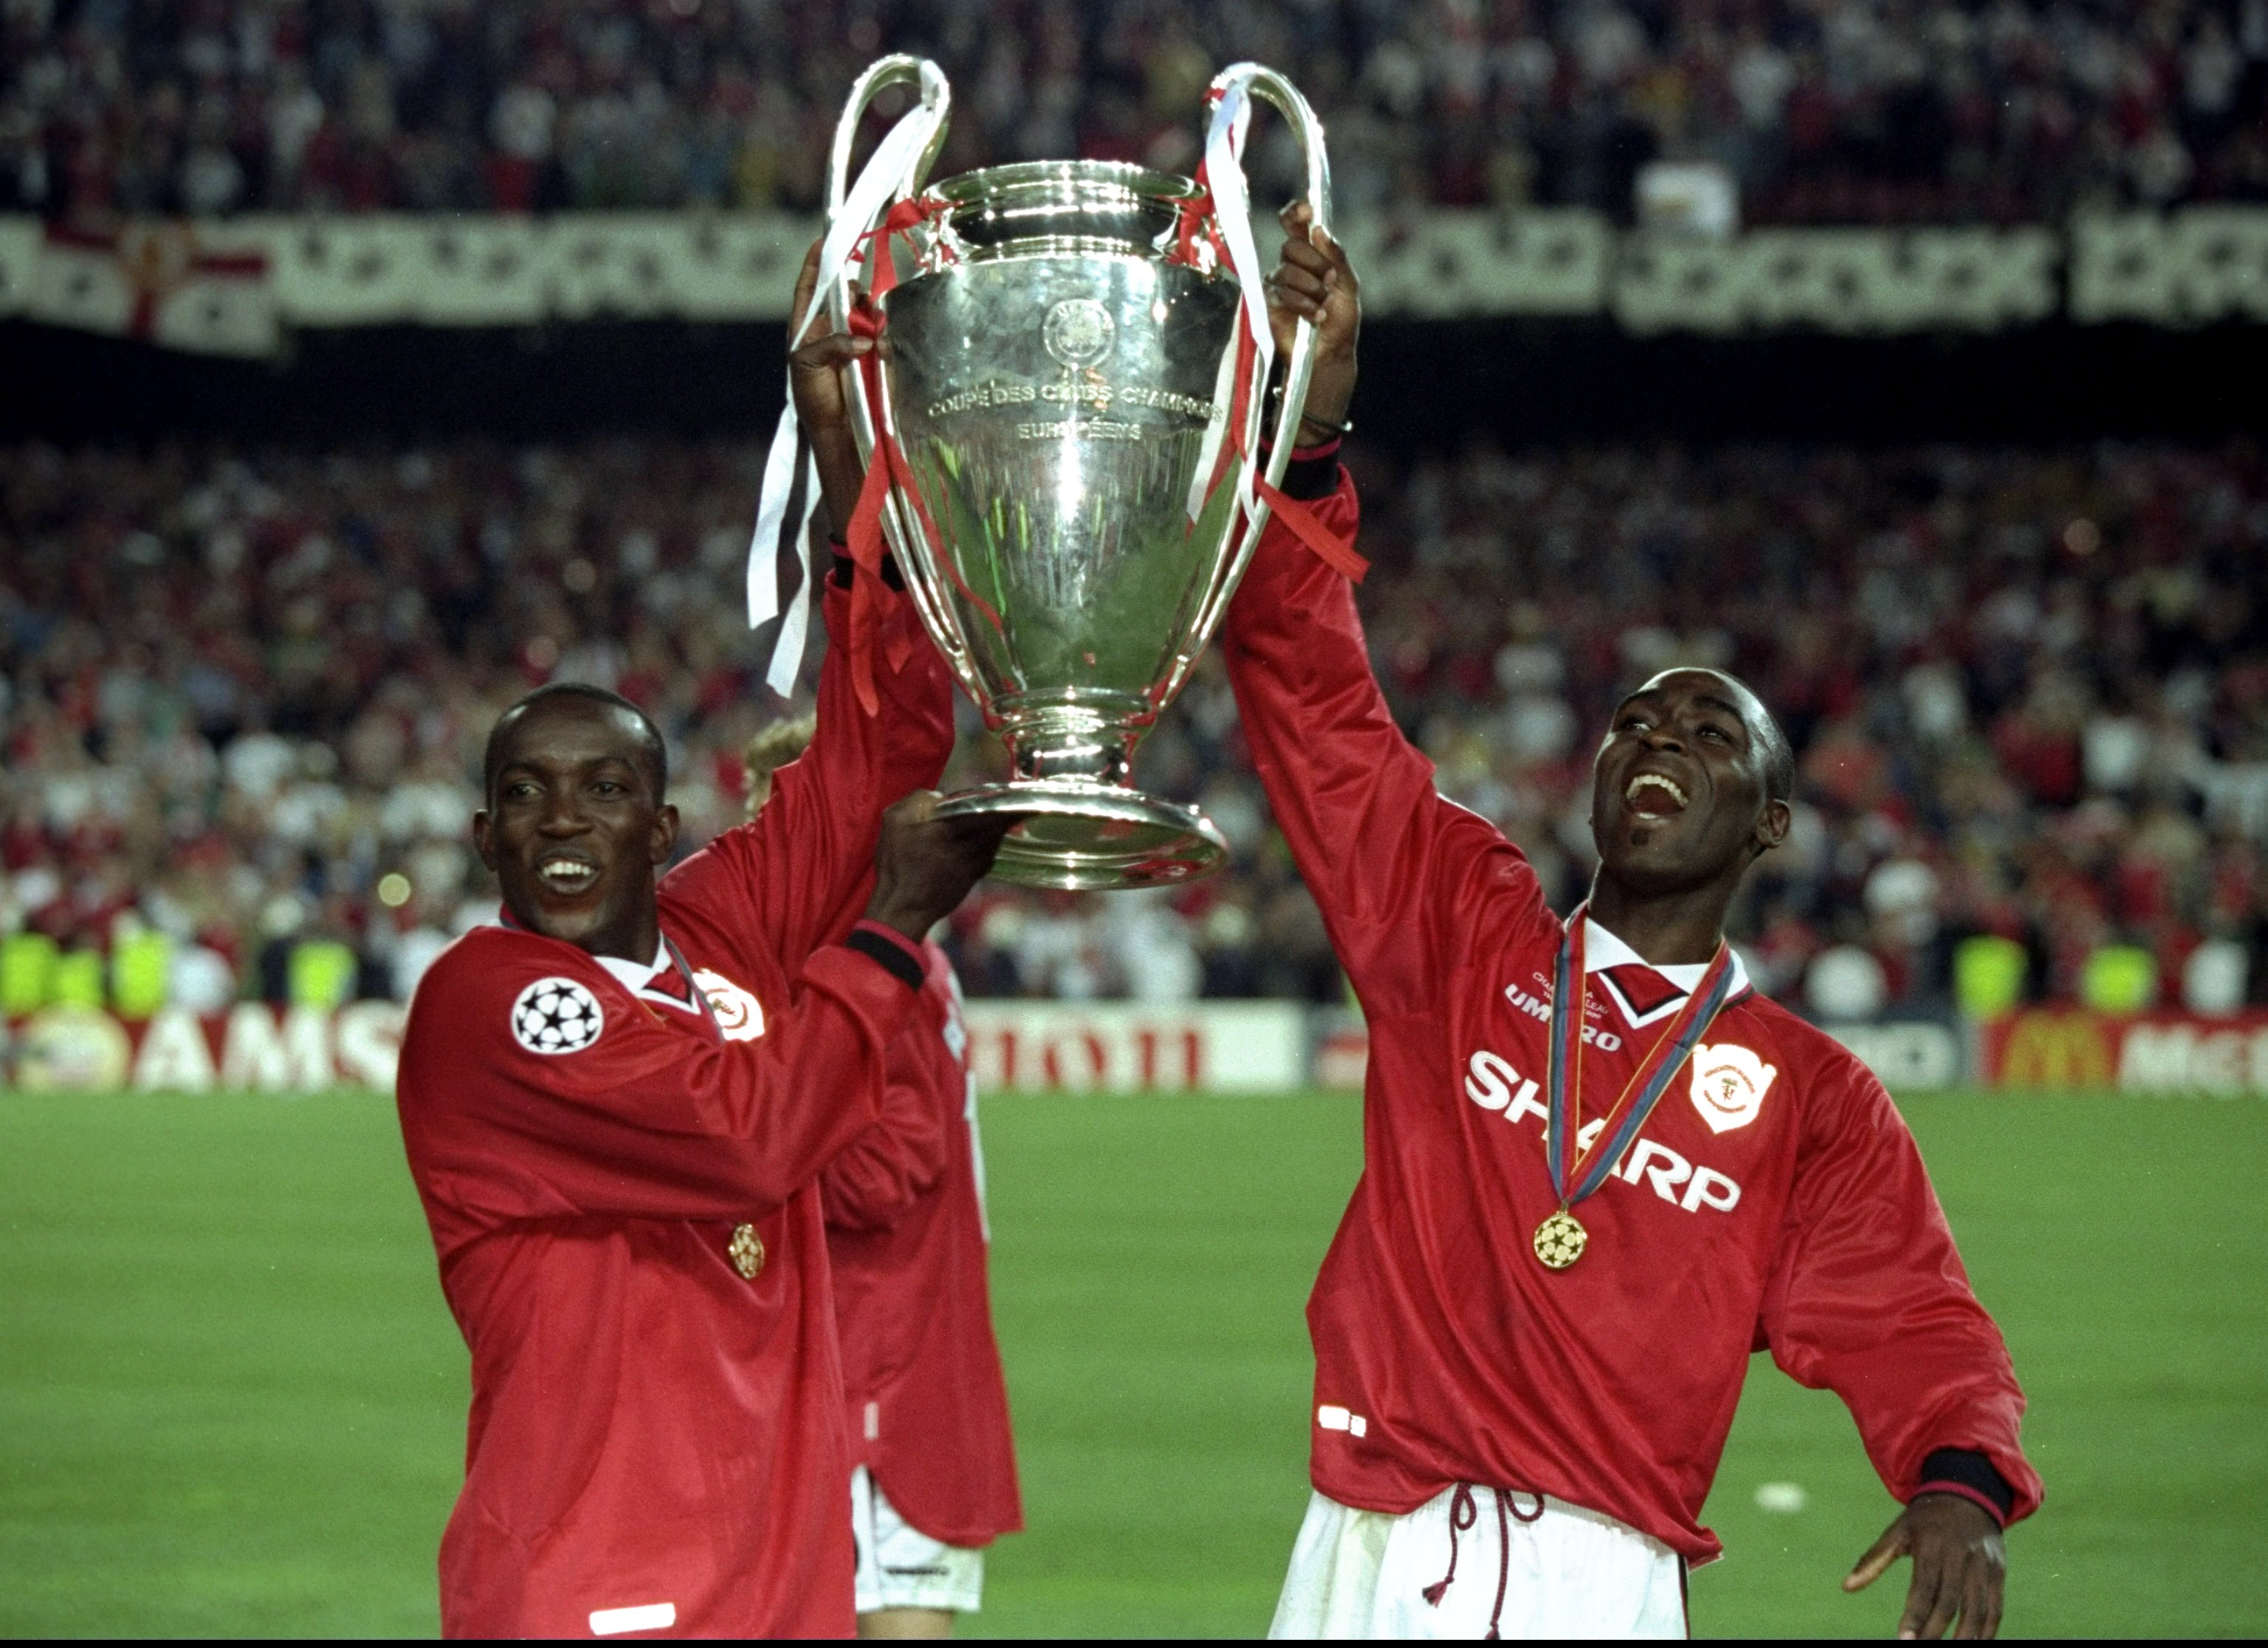 26 May 1999:  Dwight Yorke and Andy Cole of Manchester United lift the trophy after a 2-1 victory over Bayern Munich in the UEFA Champions League Final at the Nou Camp in Barcelona, Spain.  \ Mandatory Credit: Alex Livesey /Allsport